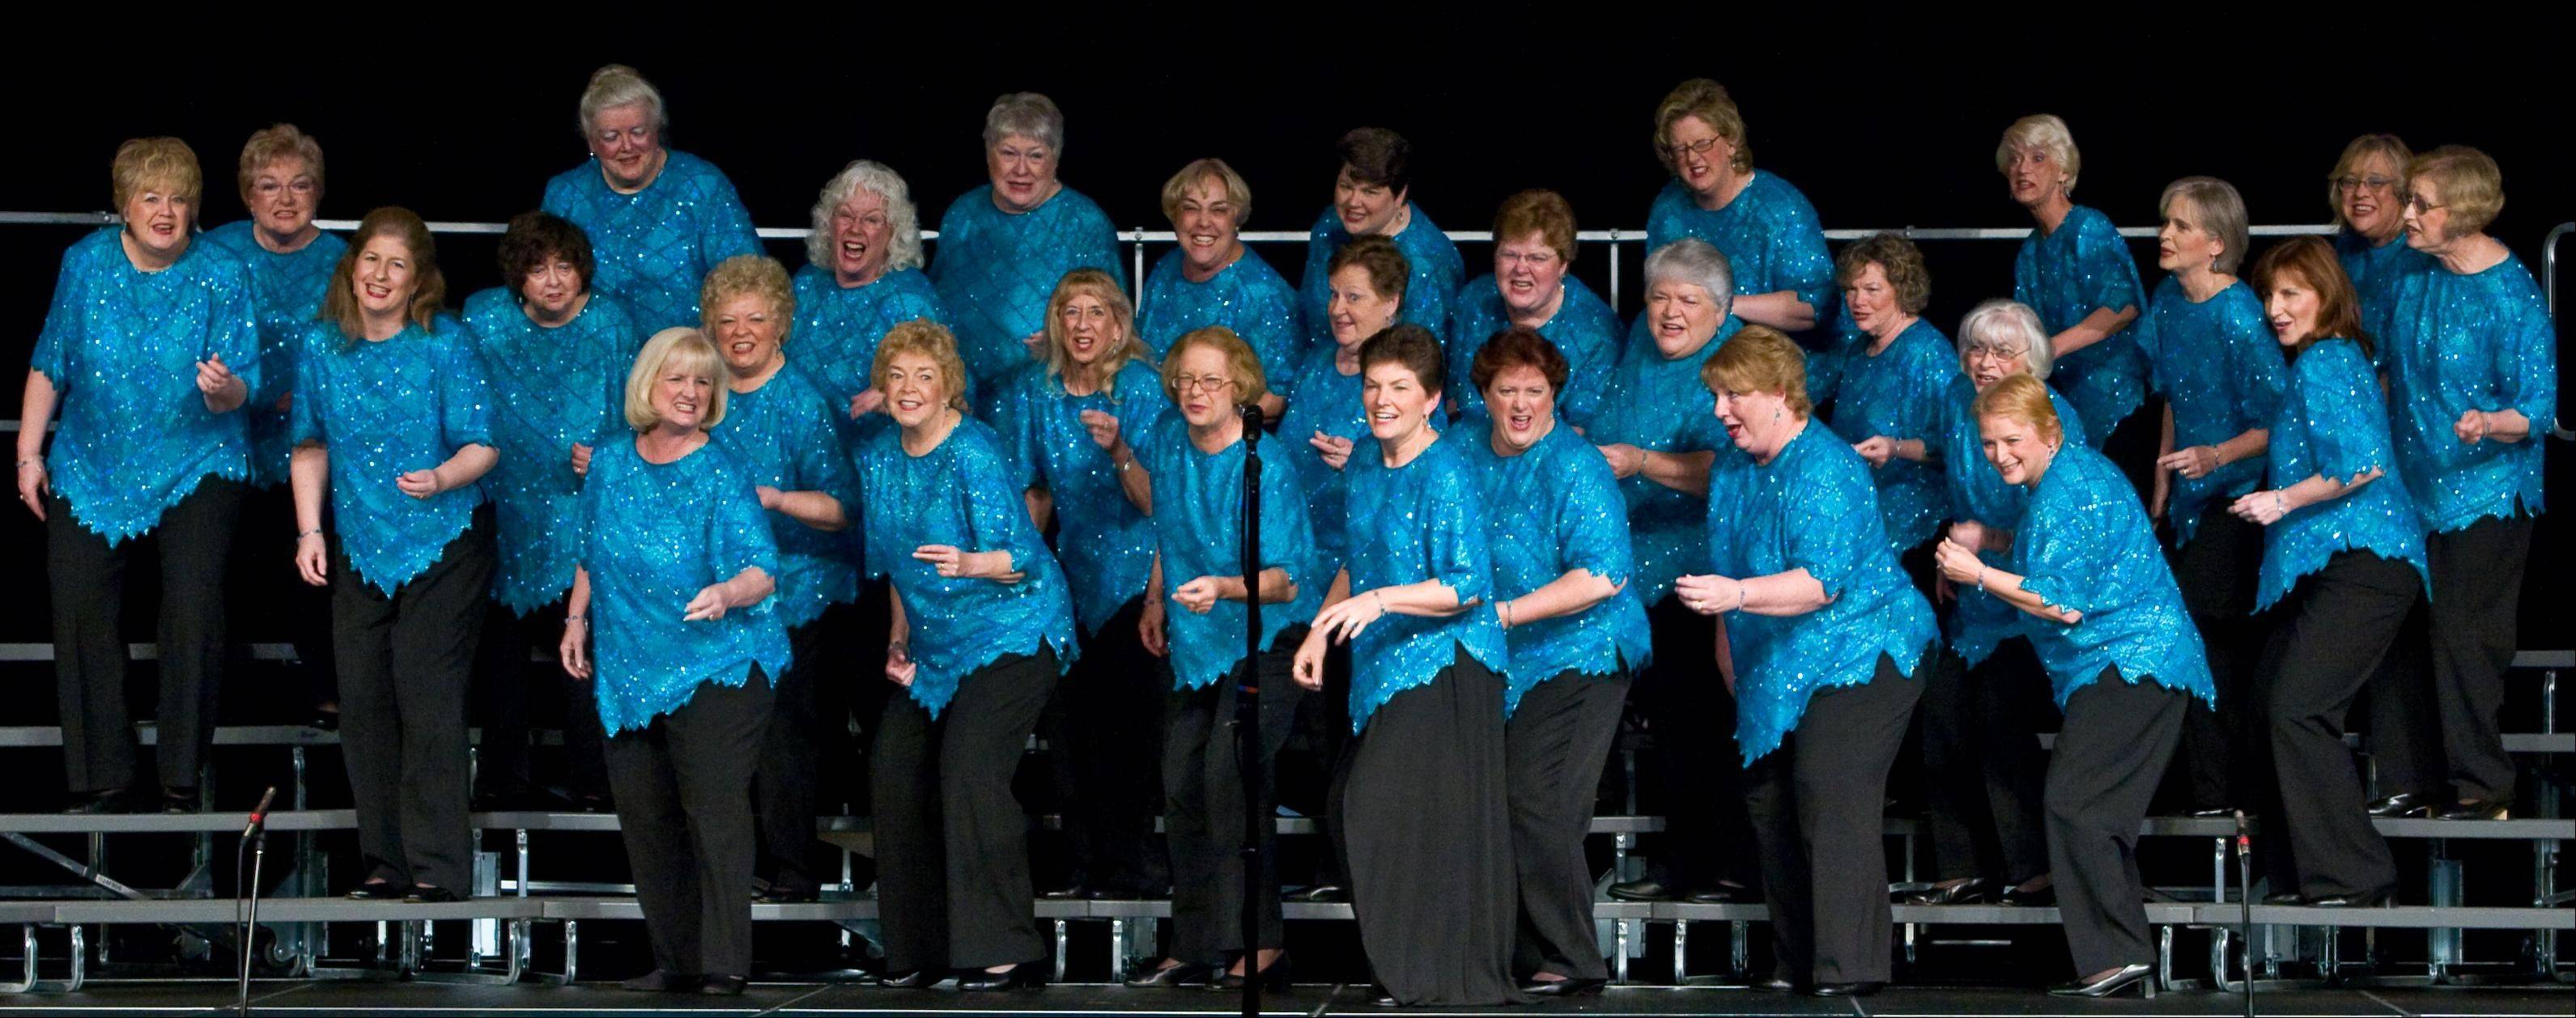 Village Vocal Chords, a Glen Ellyn-based women's chorus, will perform a 40-minute concert at 3 p.m. Sunday, March 18, as the second act in the Maple Street Chapel Preservation Society's annual variety series.